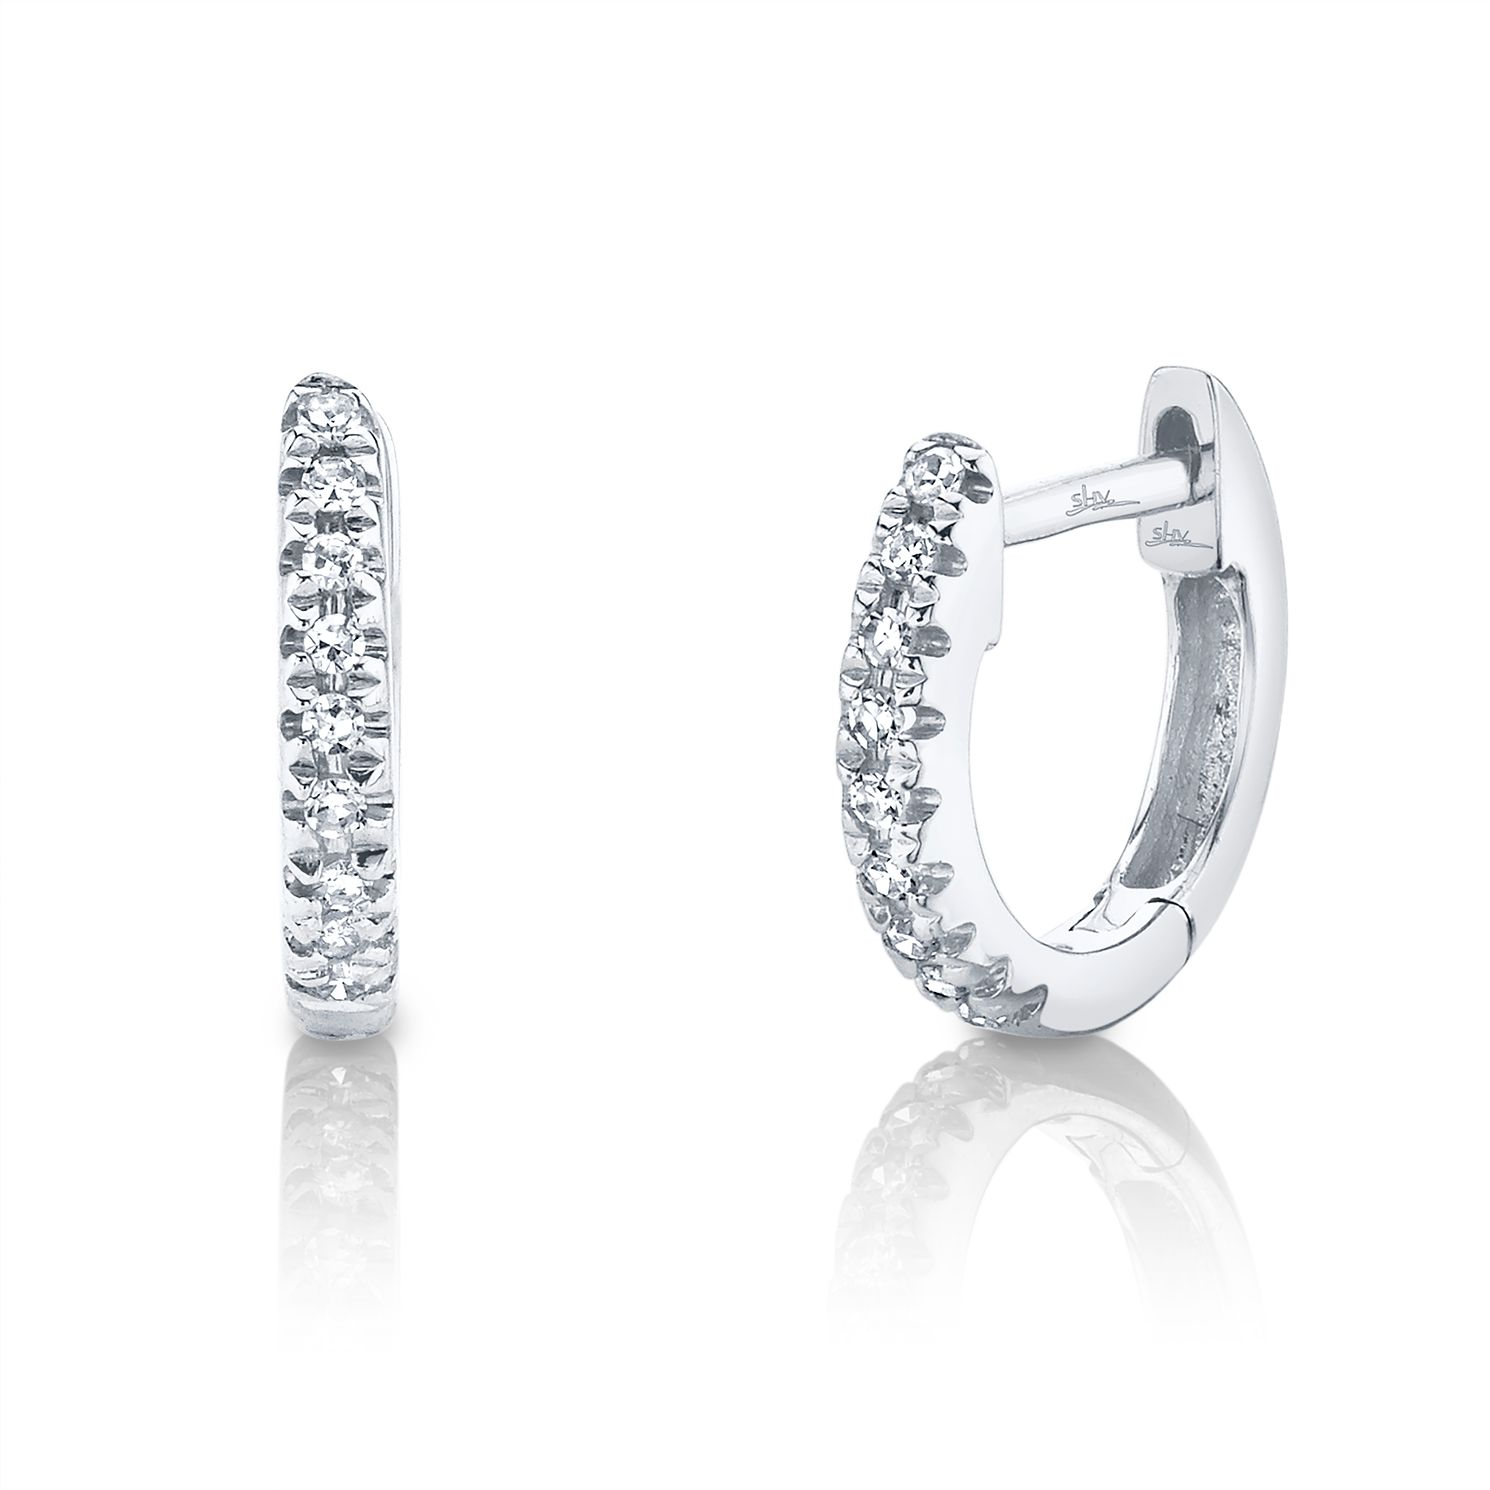 Shy Creation 14ct White Gold Diamond Huggie Earrings - Product number 1176943